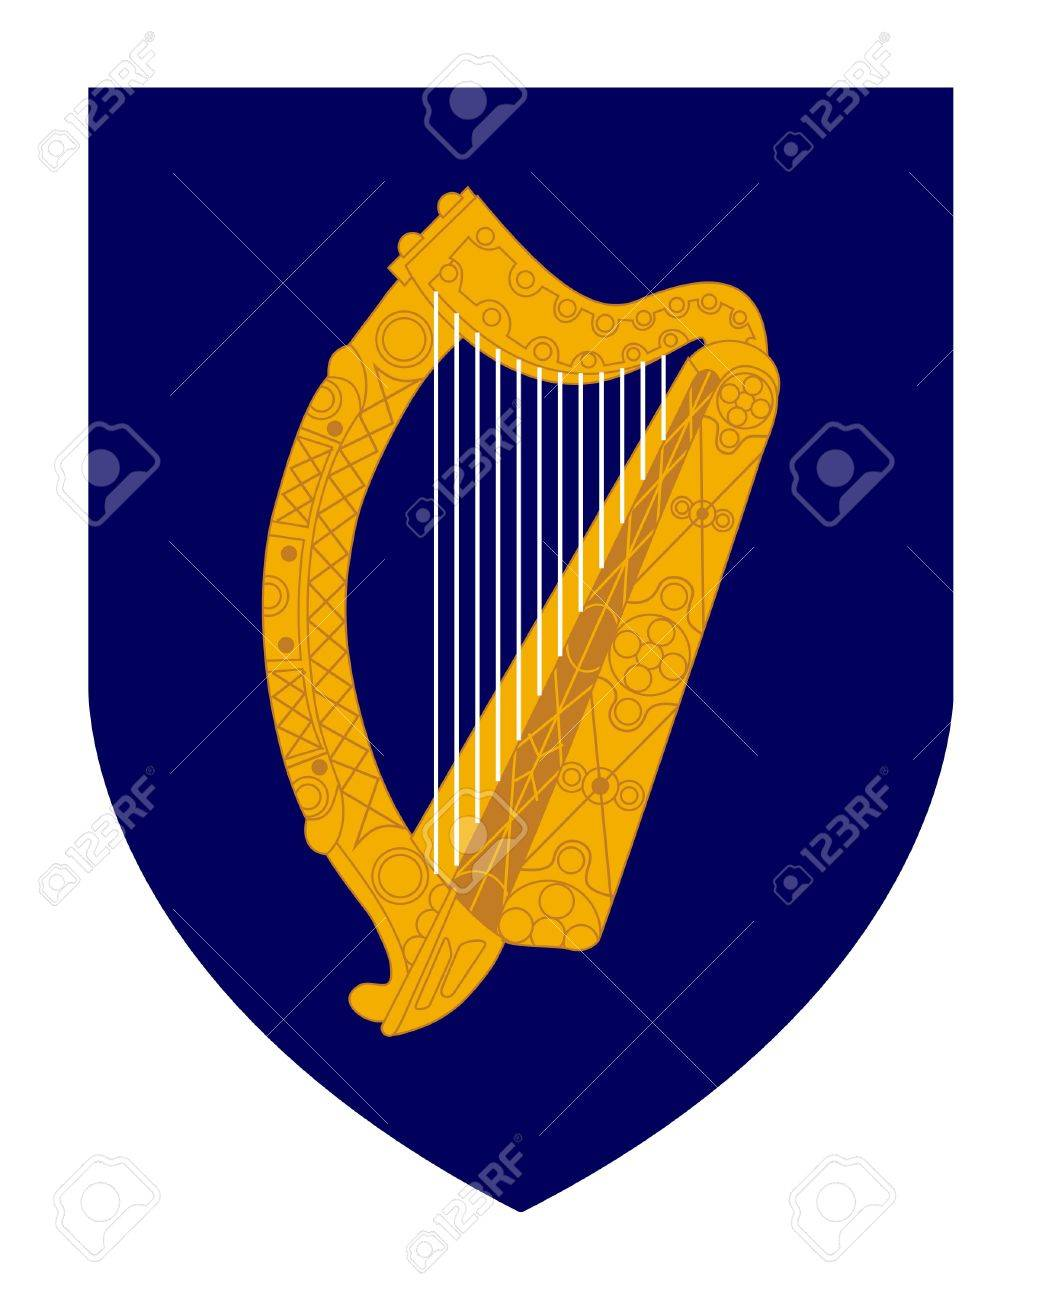 Harp on irish coat of arms shield isolated on white background harp on irish coat of arms shield isolated on white background stock photo buycottarizona Images